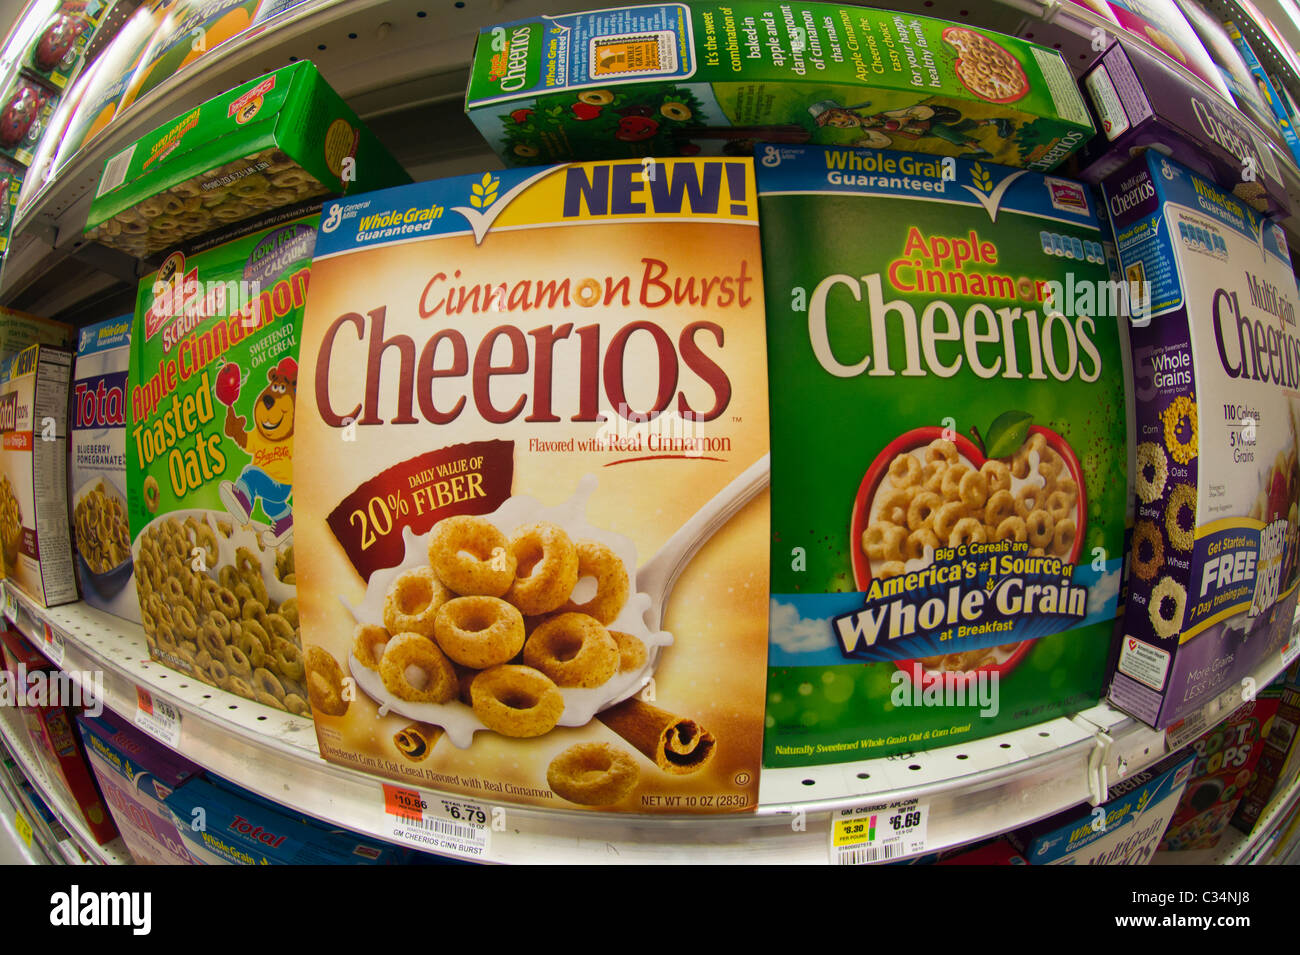 Boxes of General Mills Cheerios breakfast cereals in the grocery department of a store in New York - Stock Image